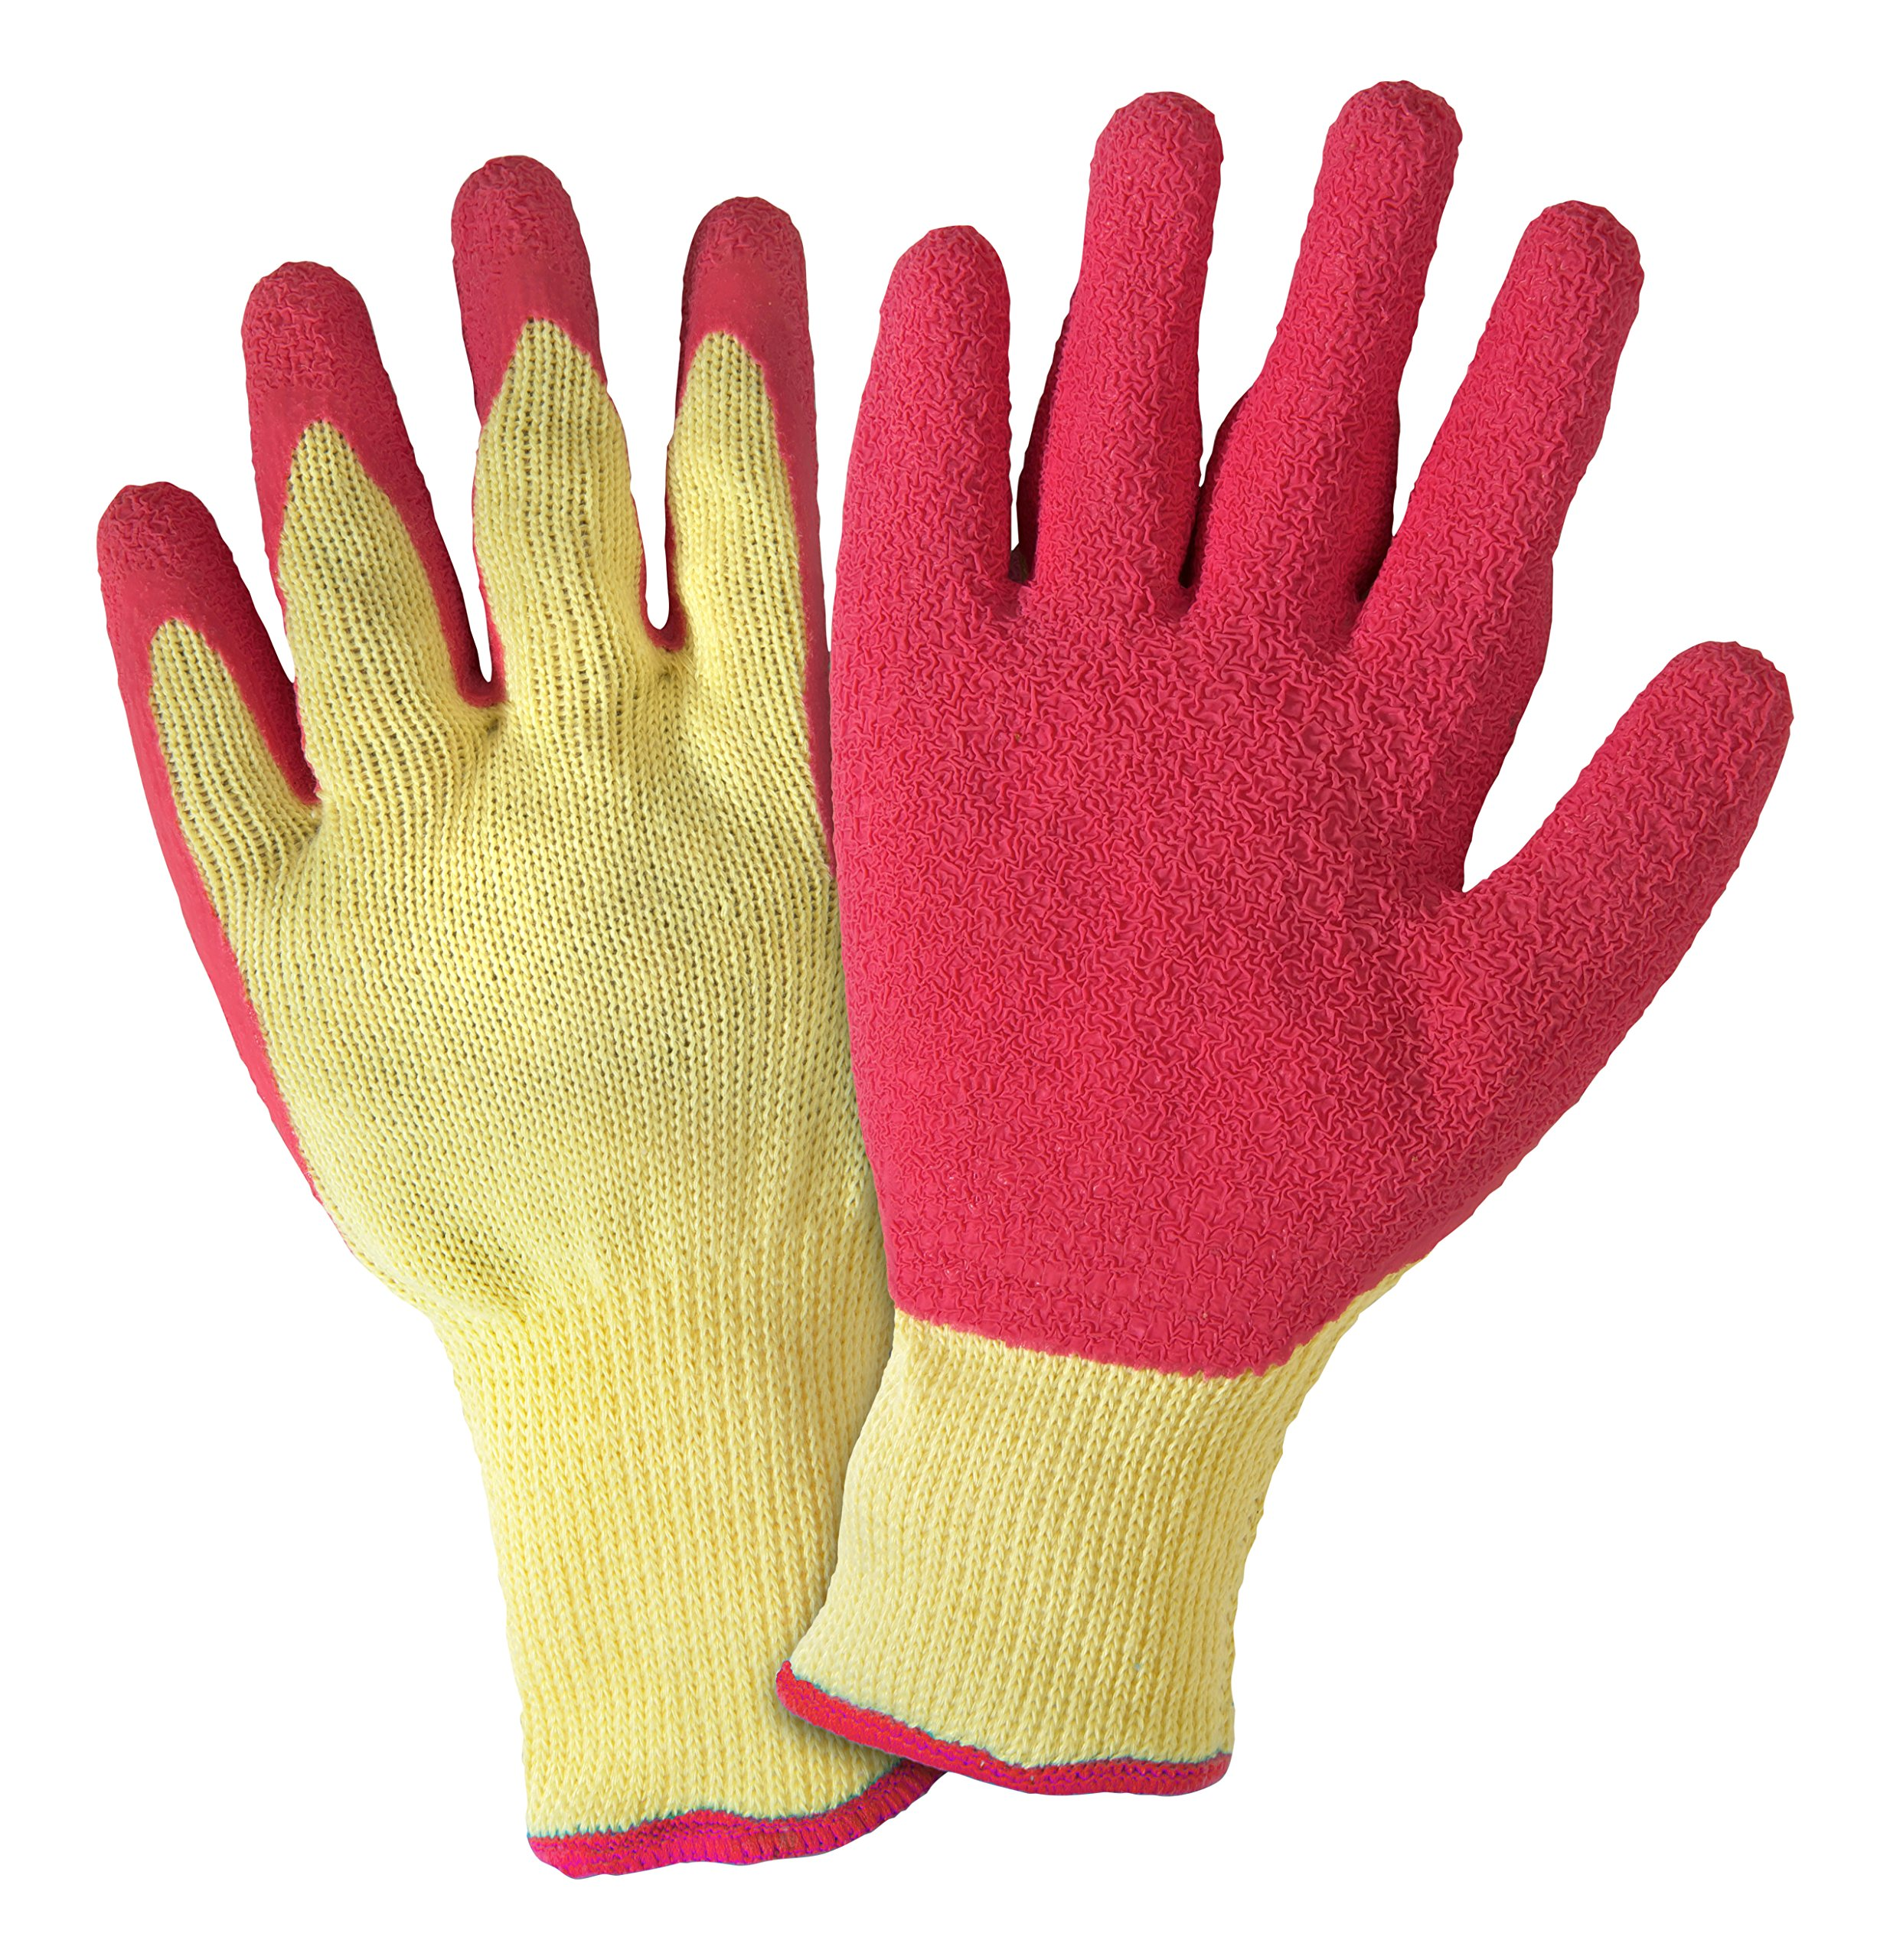 DIRTY WORK DW20700 Stretch Knit Gardening Gloves with Latex Coated Palm: Women's Large, Colors May Vary, 1 Pair